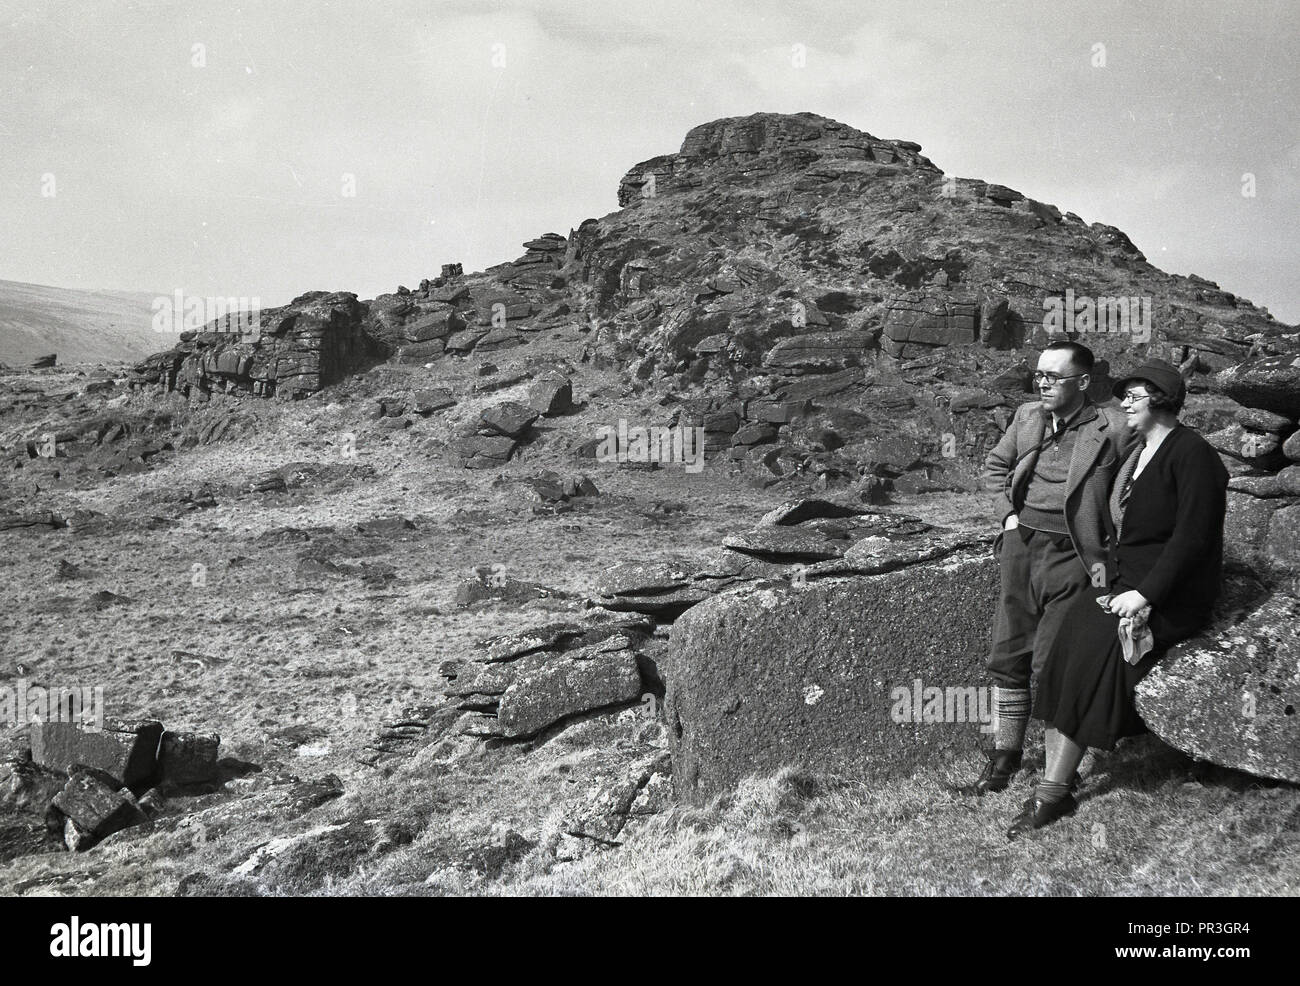 1930s, historical, a couple resting taking in the view at Longaford Tor, a hillside rocky peak or ridge at Dartmoor national park in Devon, England, UK, a natural wild open moorland that contains many ancient rock formations or granite outcrops known as tors. - Stock Image